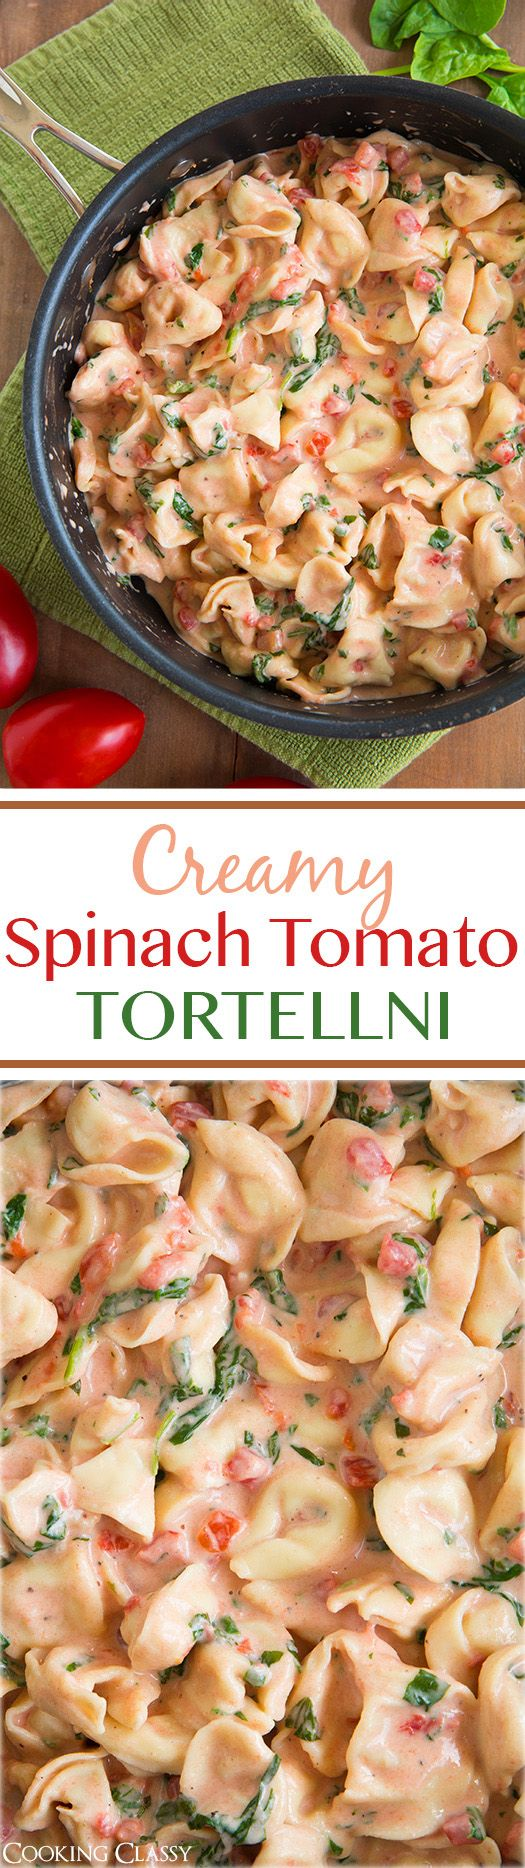 Spinach   amazing easy Creamy canada to make  bridal and shoes Tortellini Tomato this it     s so tastes cheap